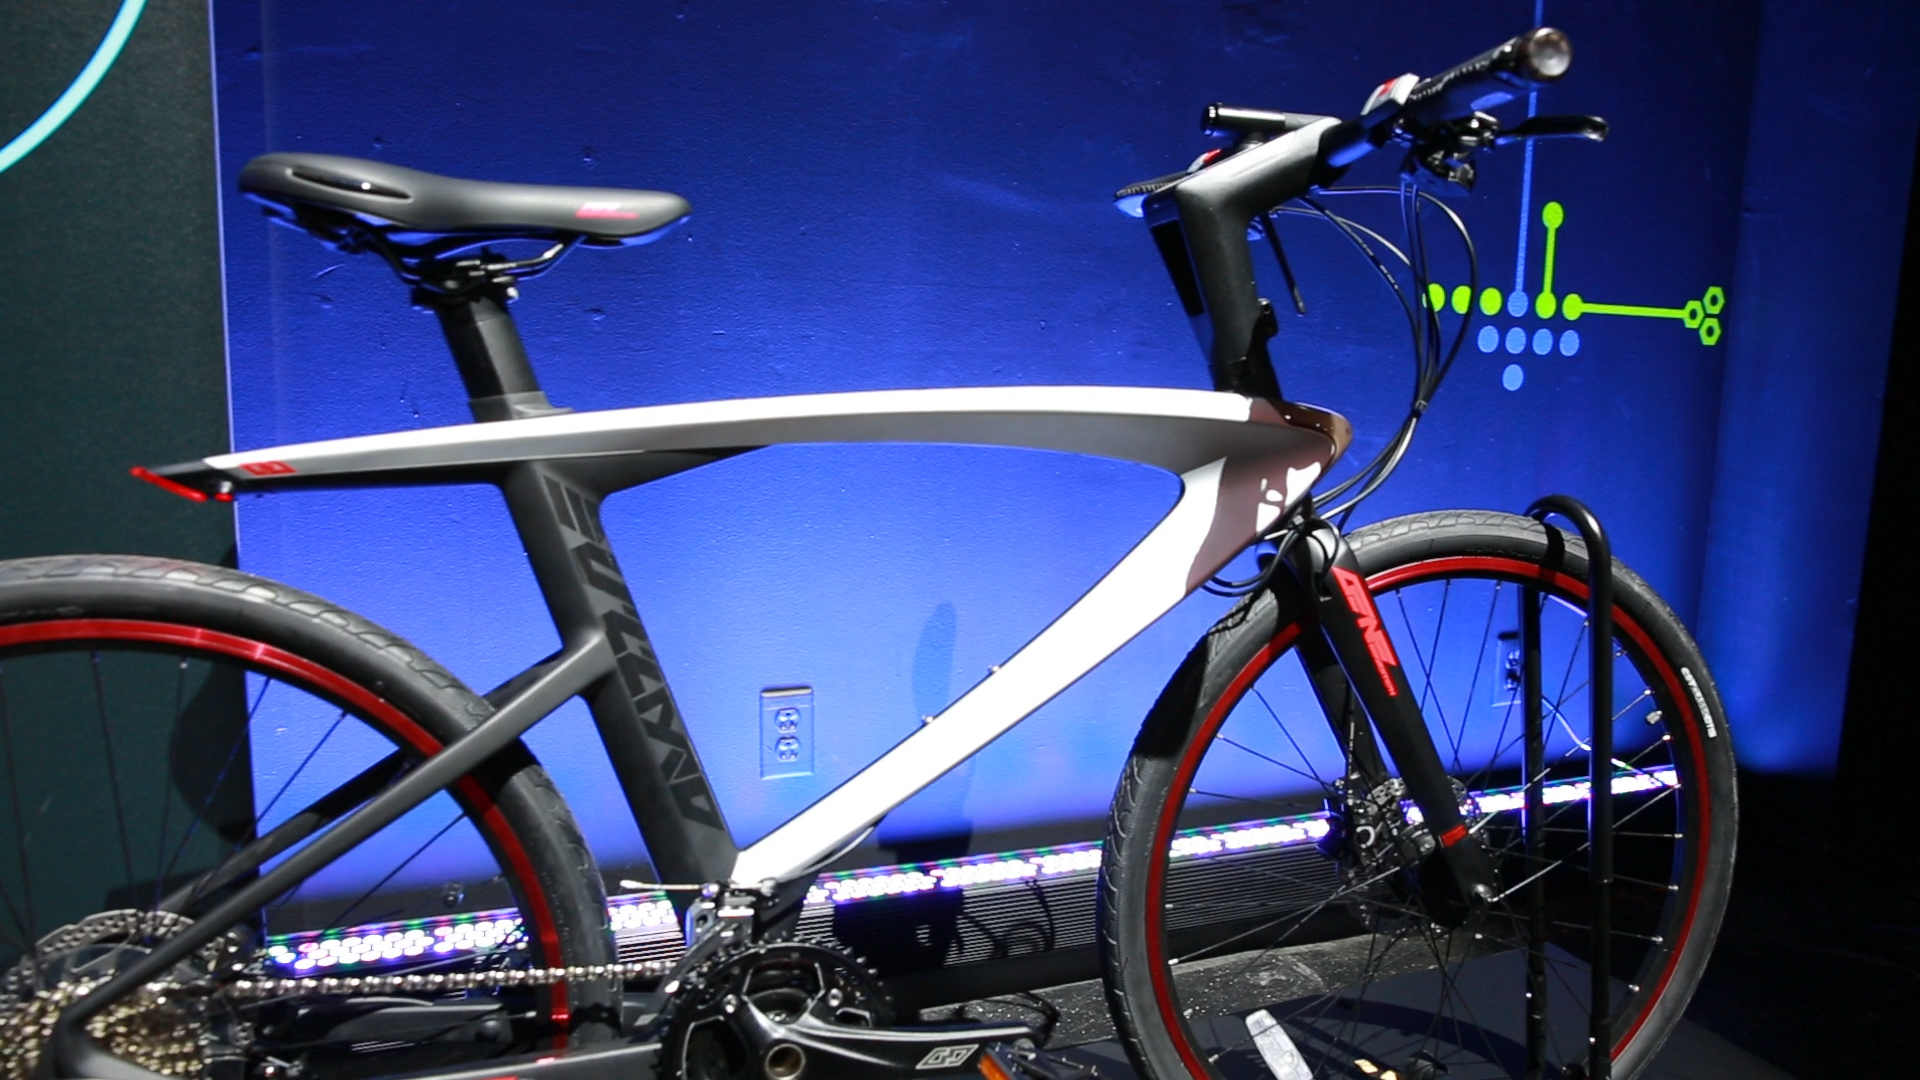 Video: Lasers and a computer set LeEco's Super Bike apart